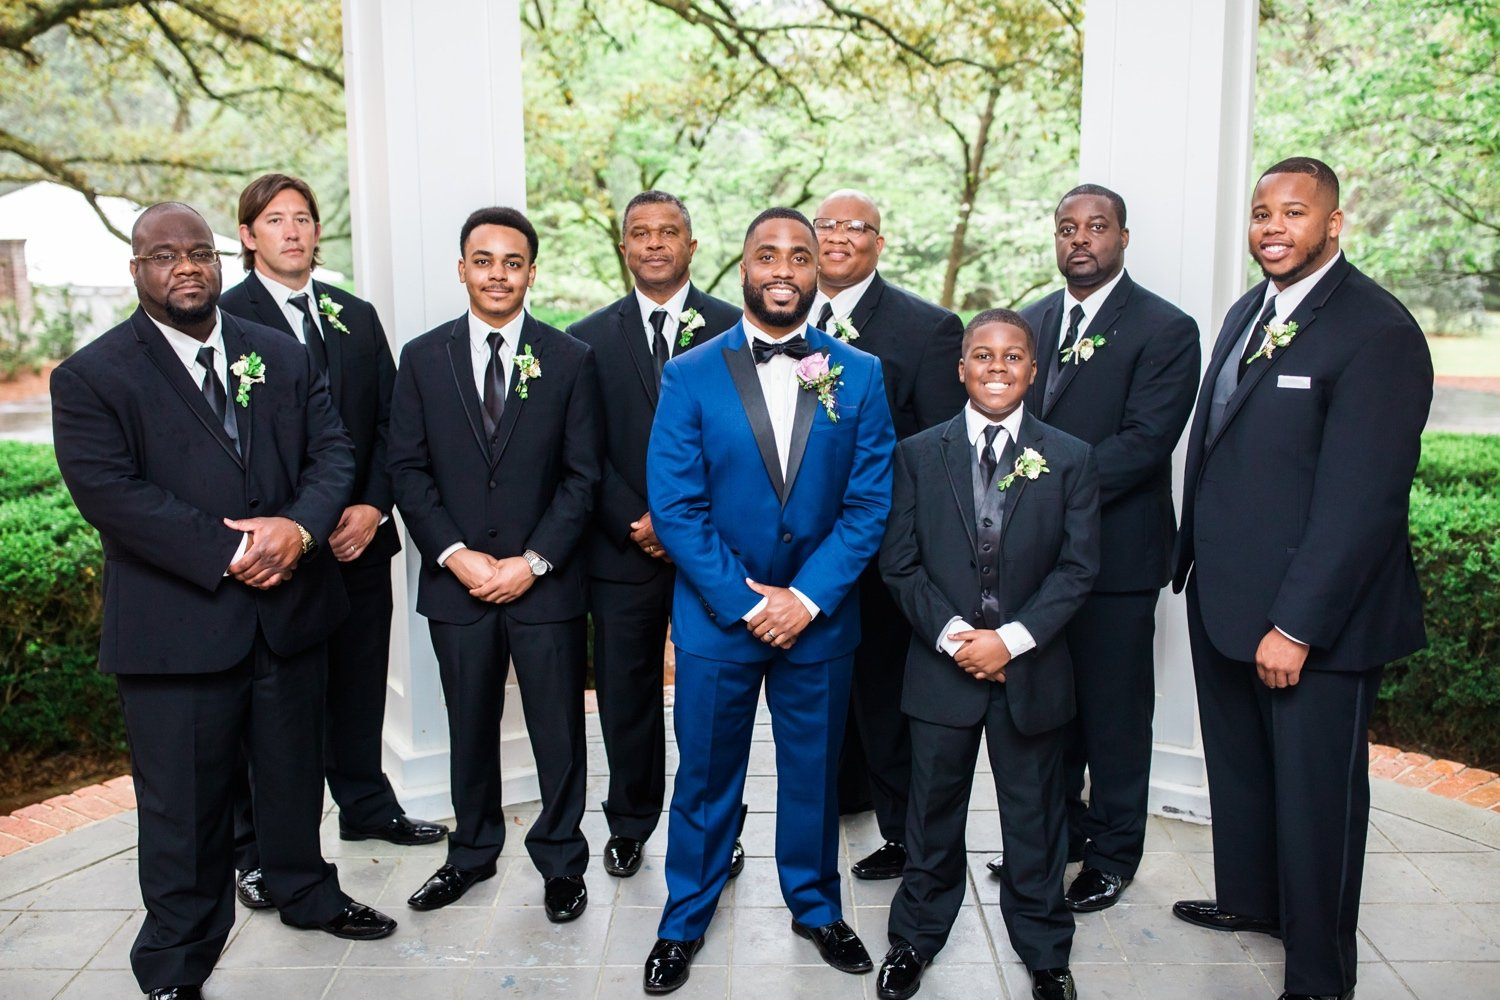 group photo of all the groomsmen and the groom